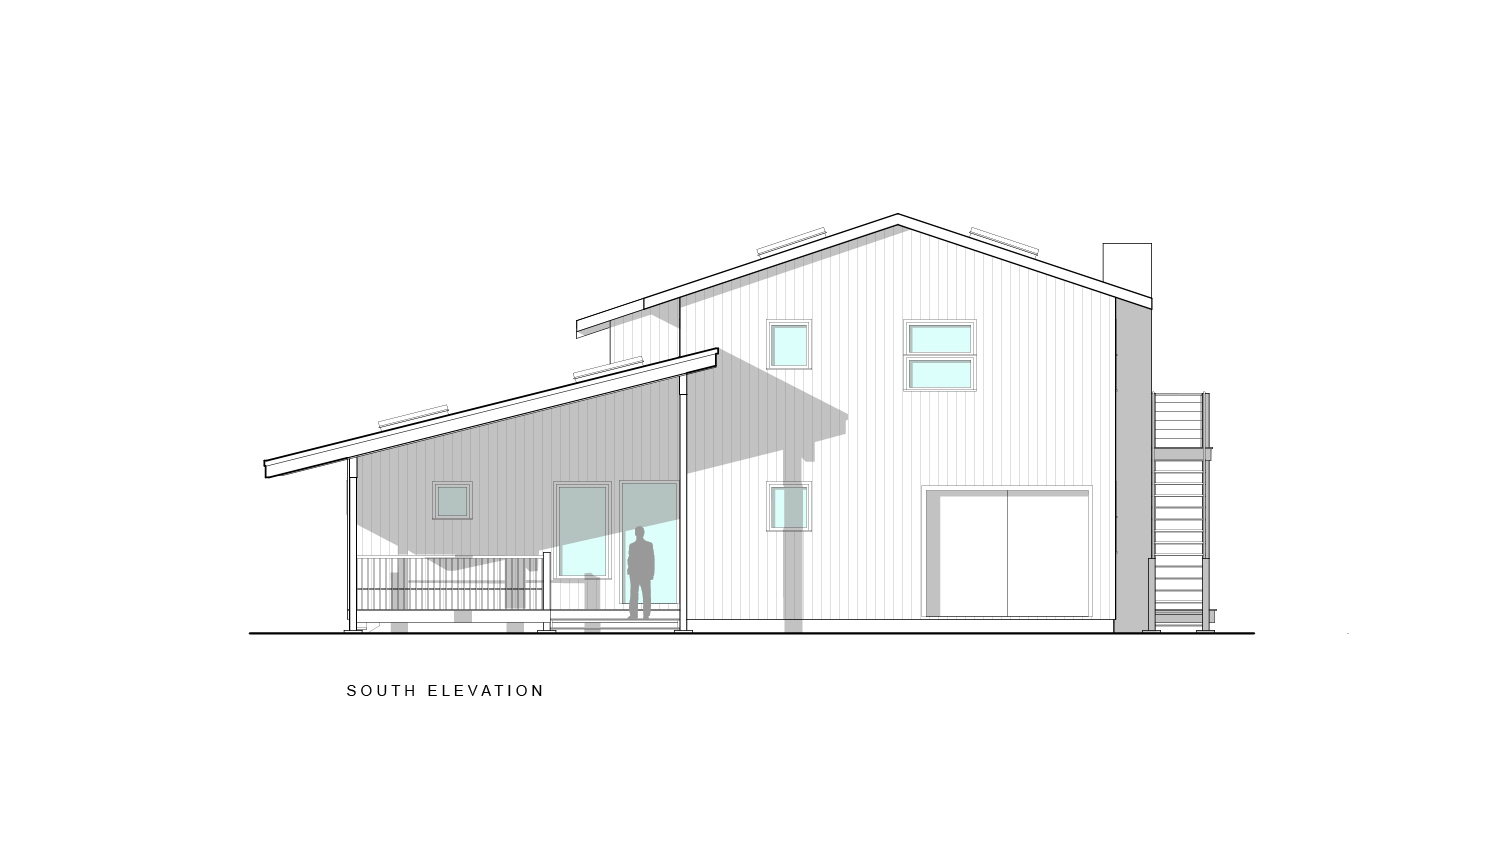 tubman-residence-south-elevation